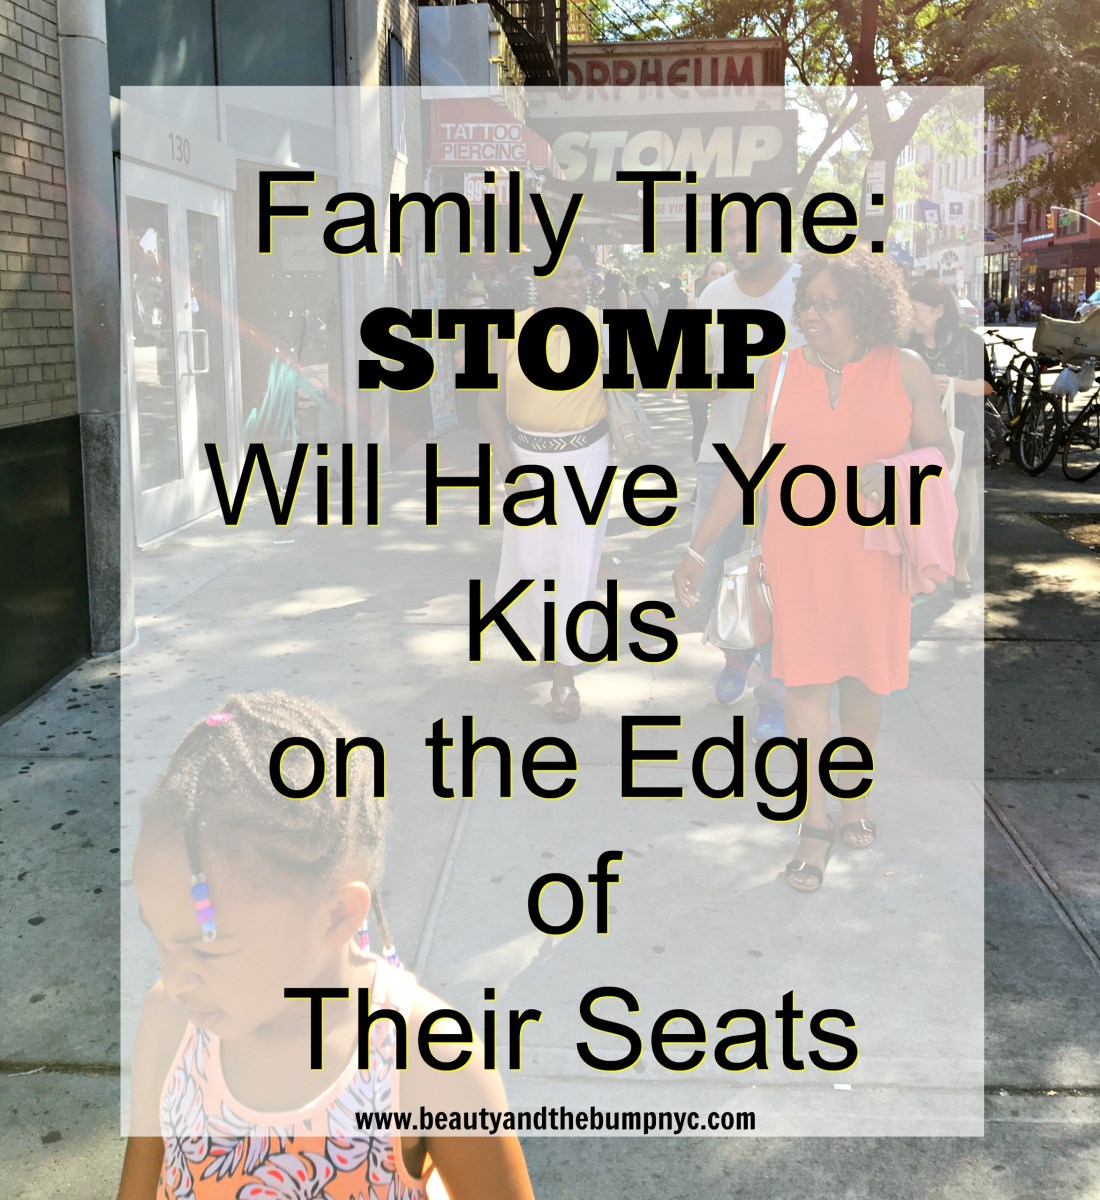 Family Time: STOMP Will Have Your Kids on the Edge of Their Seats